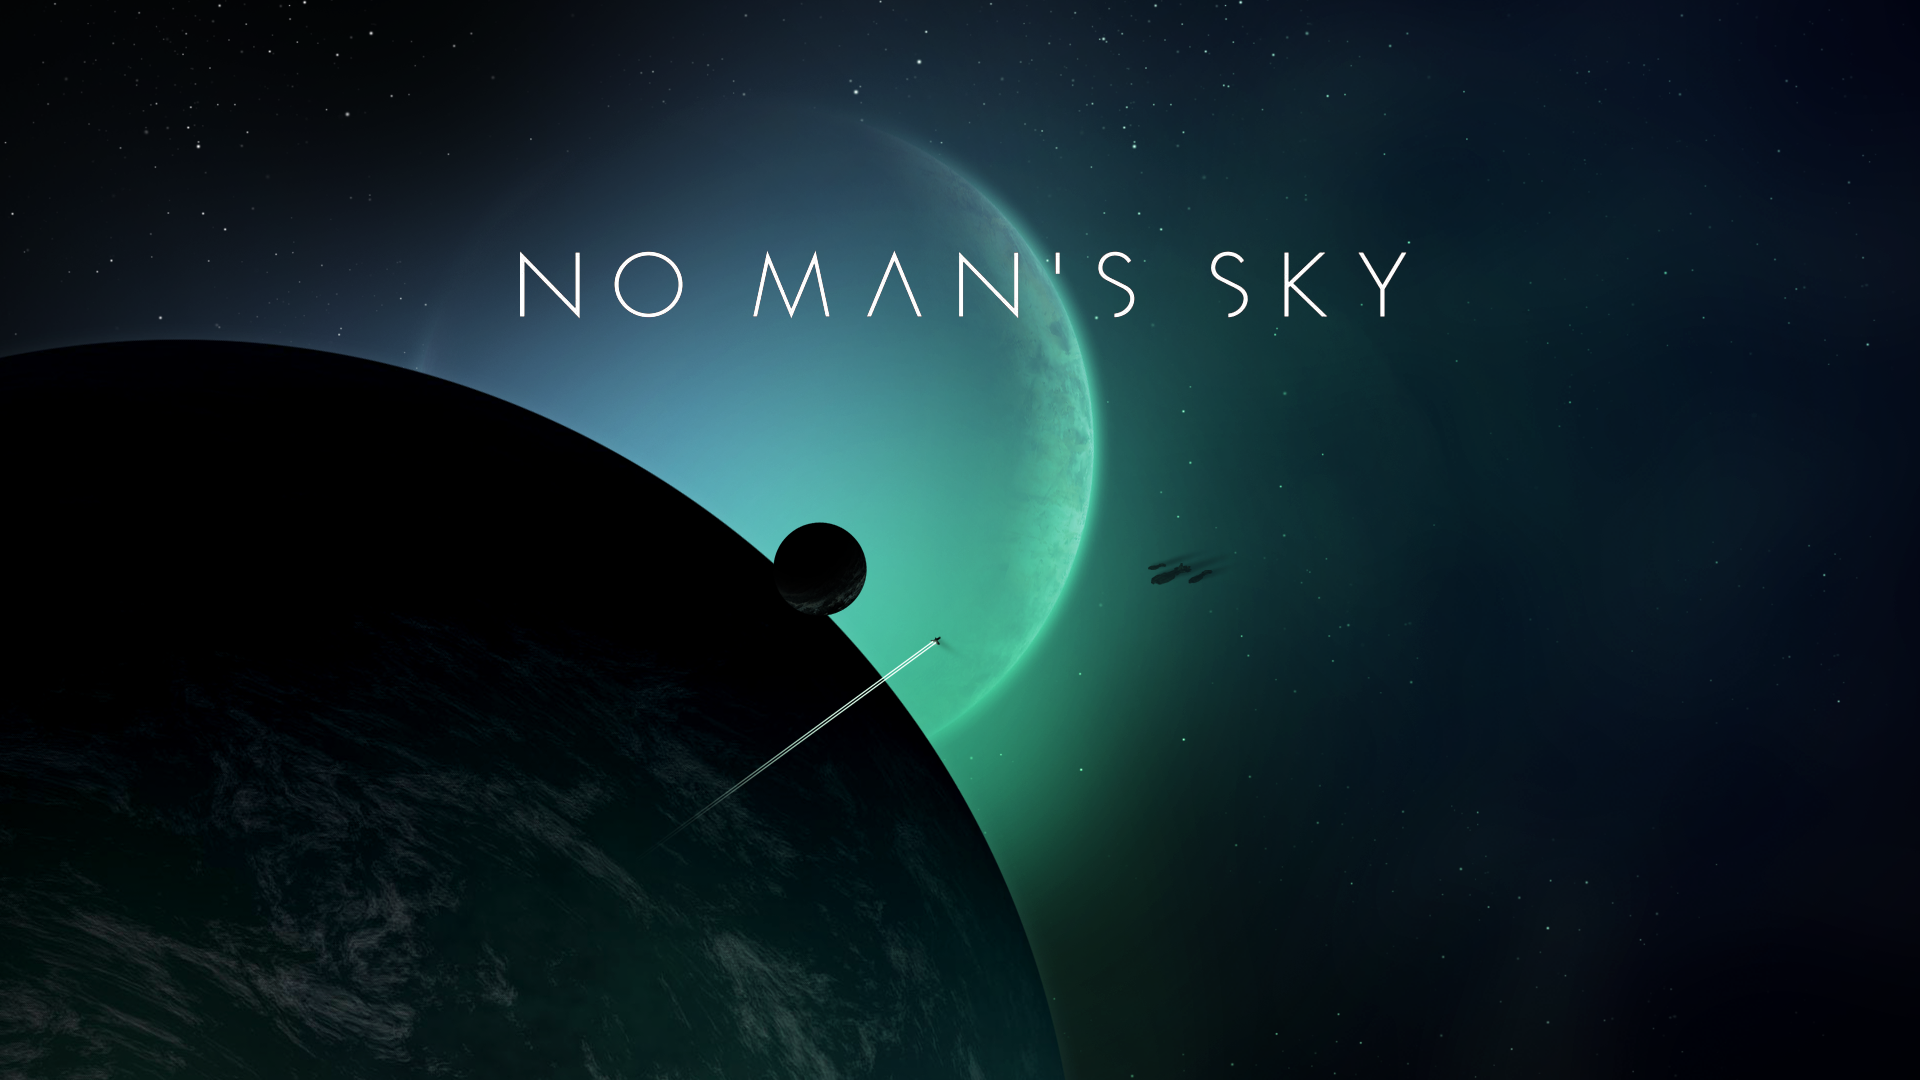 no mans sky wallpapers images photos pictures backgrounds